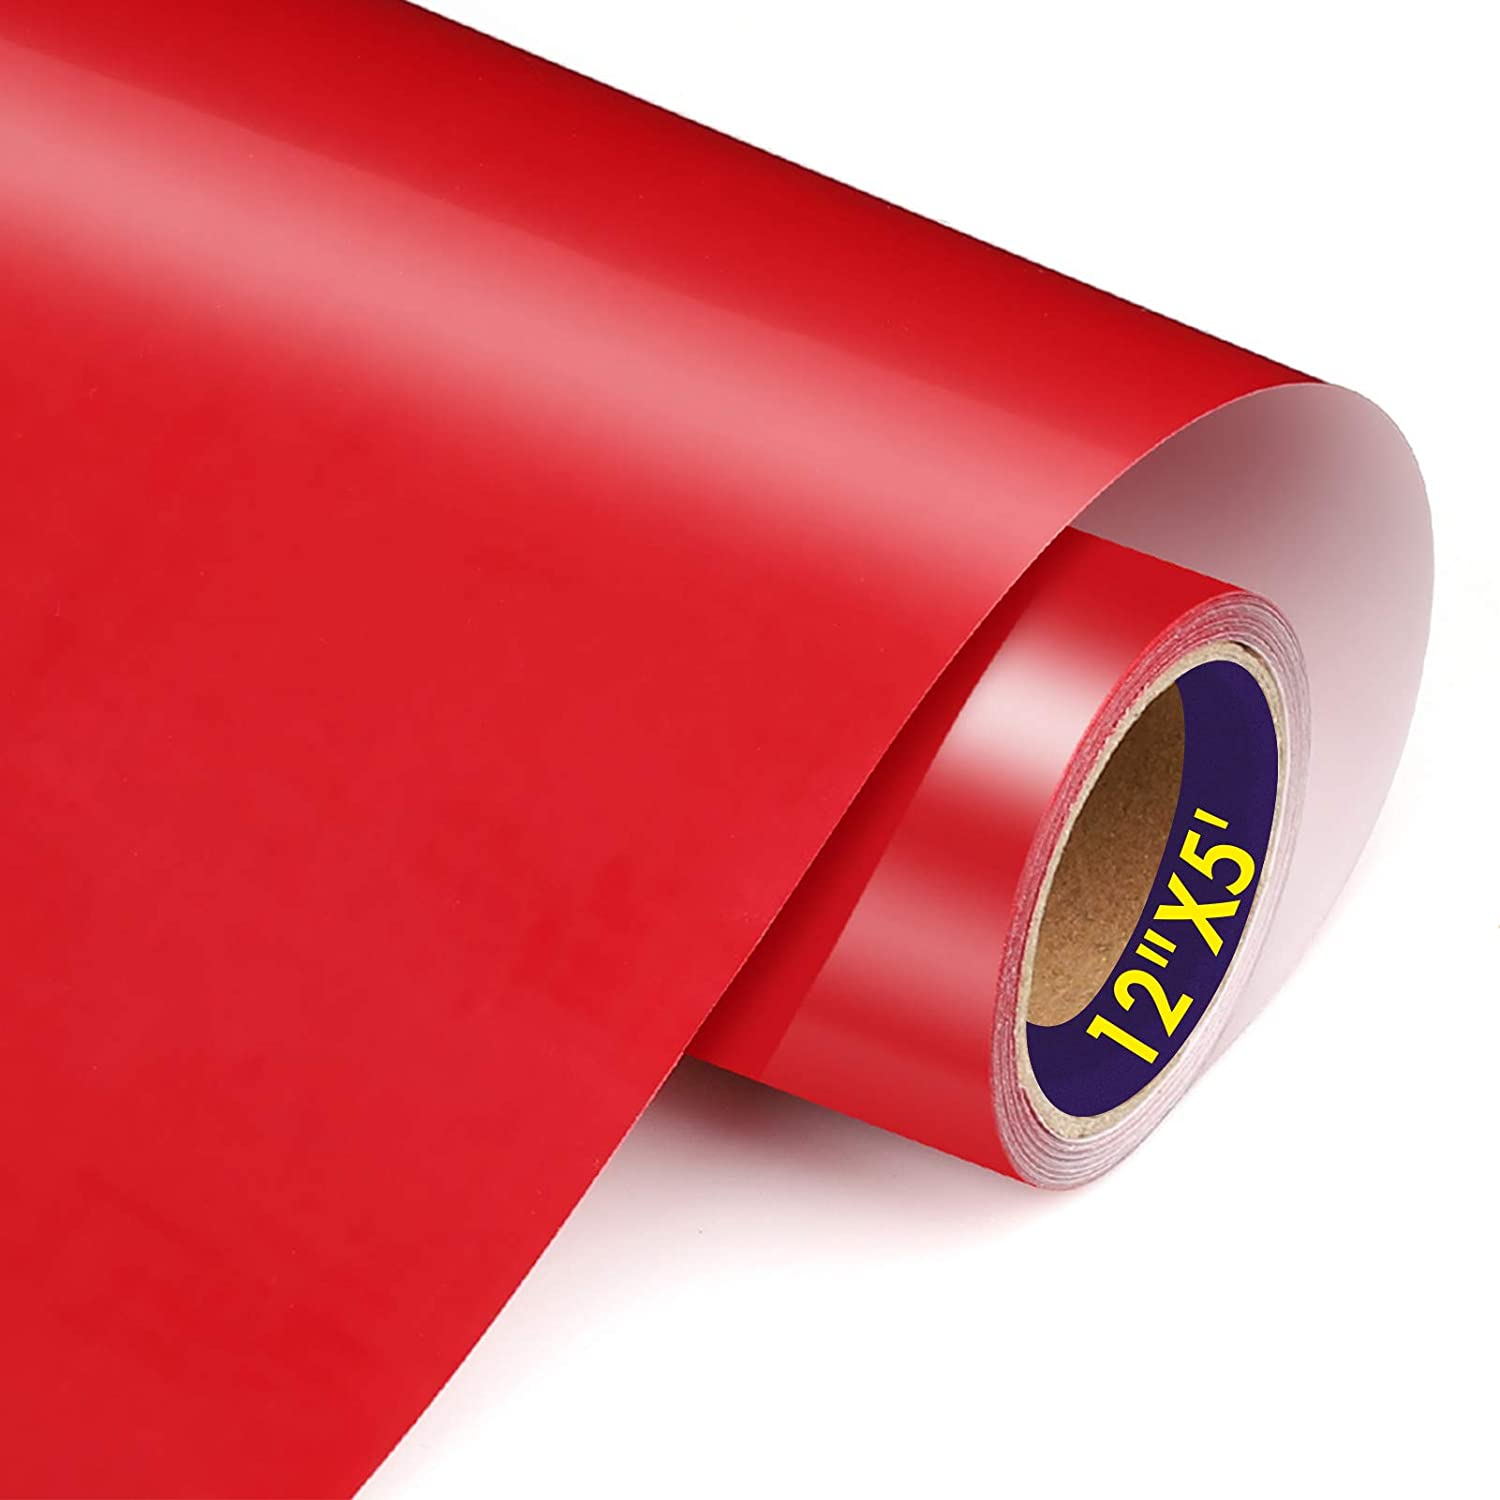 TransWonder Premium Red Heat Transfer Vinyl HTV Viny 12in.x5ft, Iron on Vinyl for T Shirts Christmas HTV (Deep Red): Arts, Crafts & Sewing